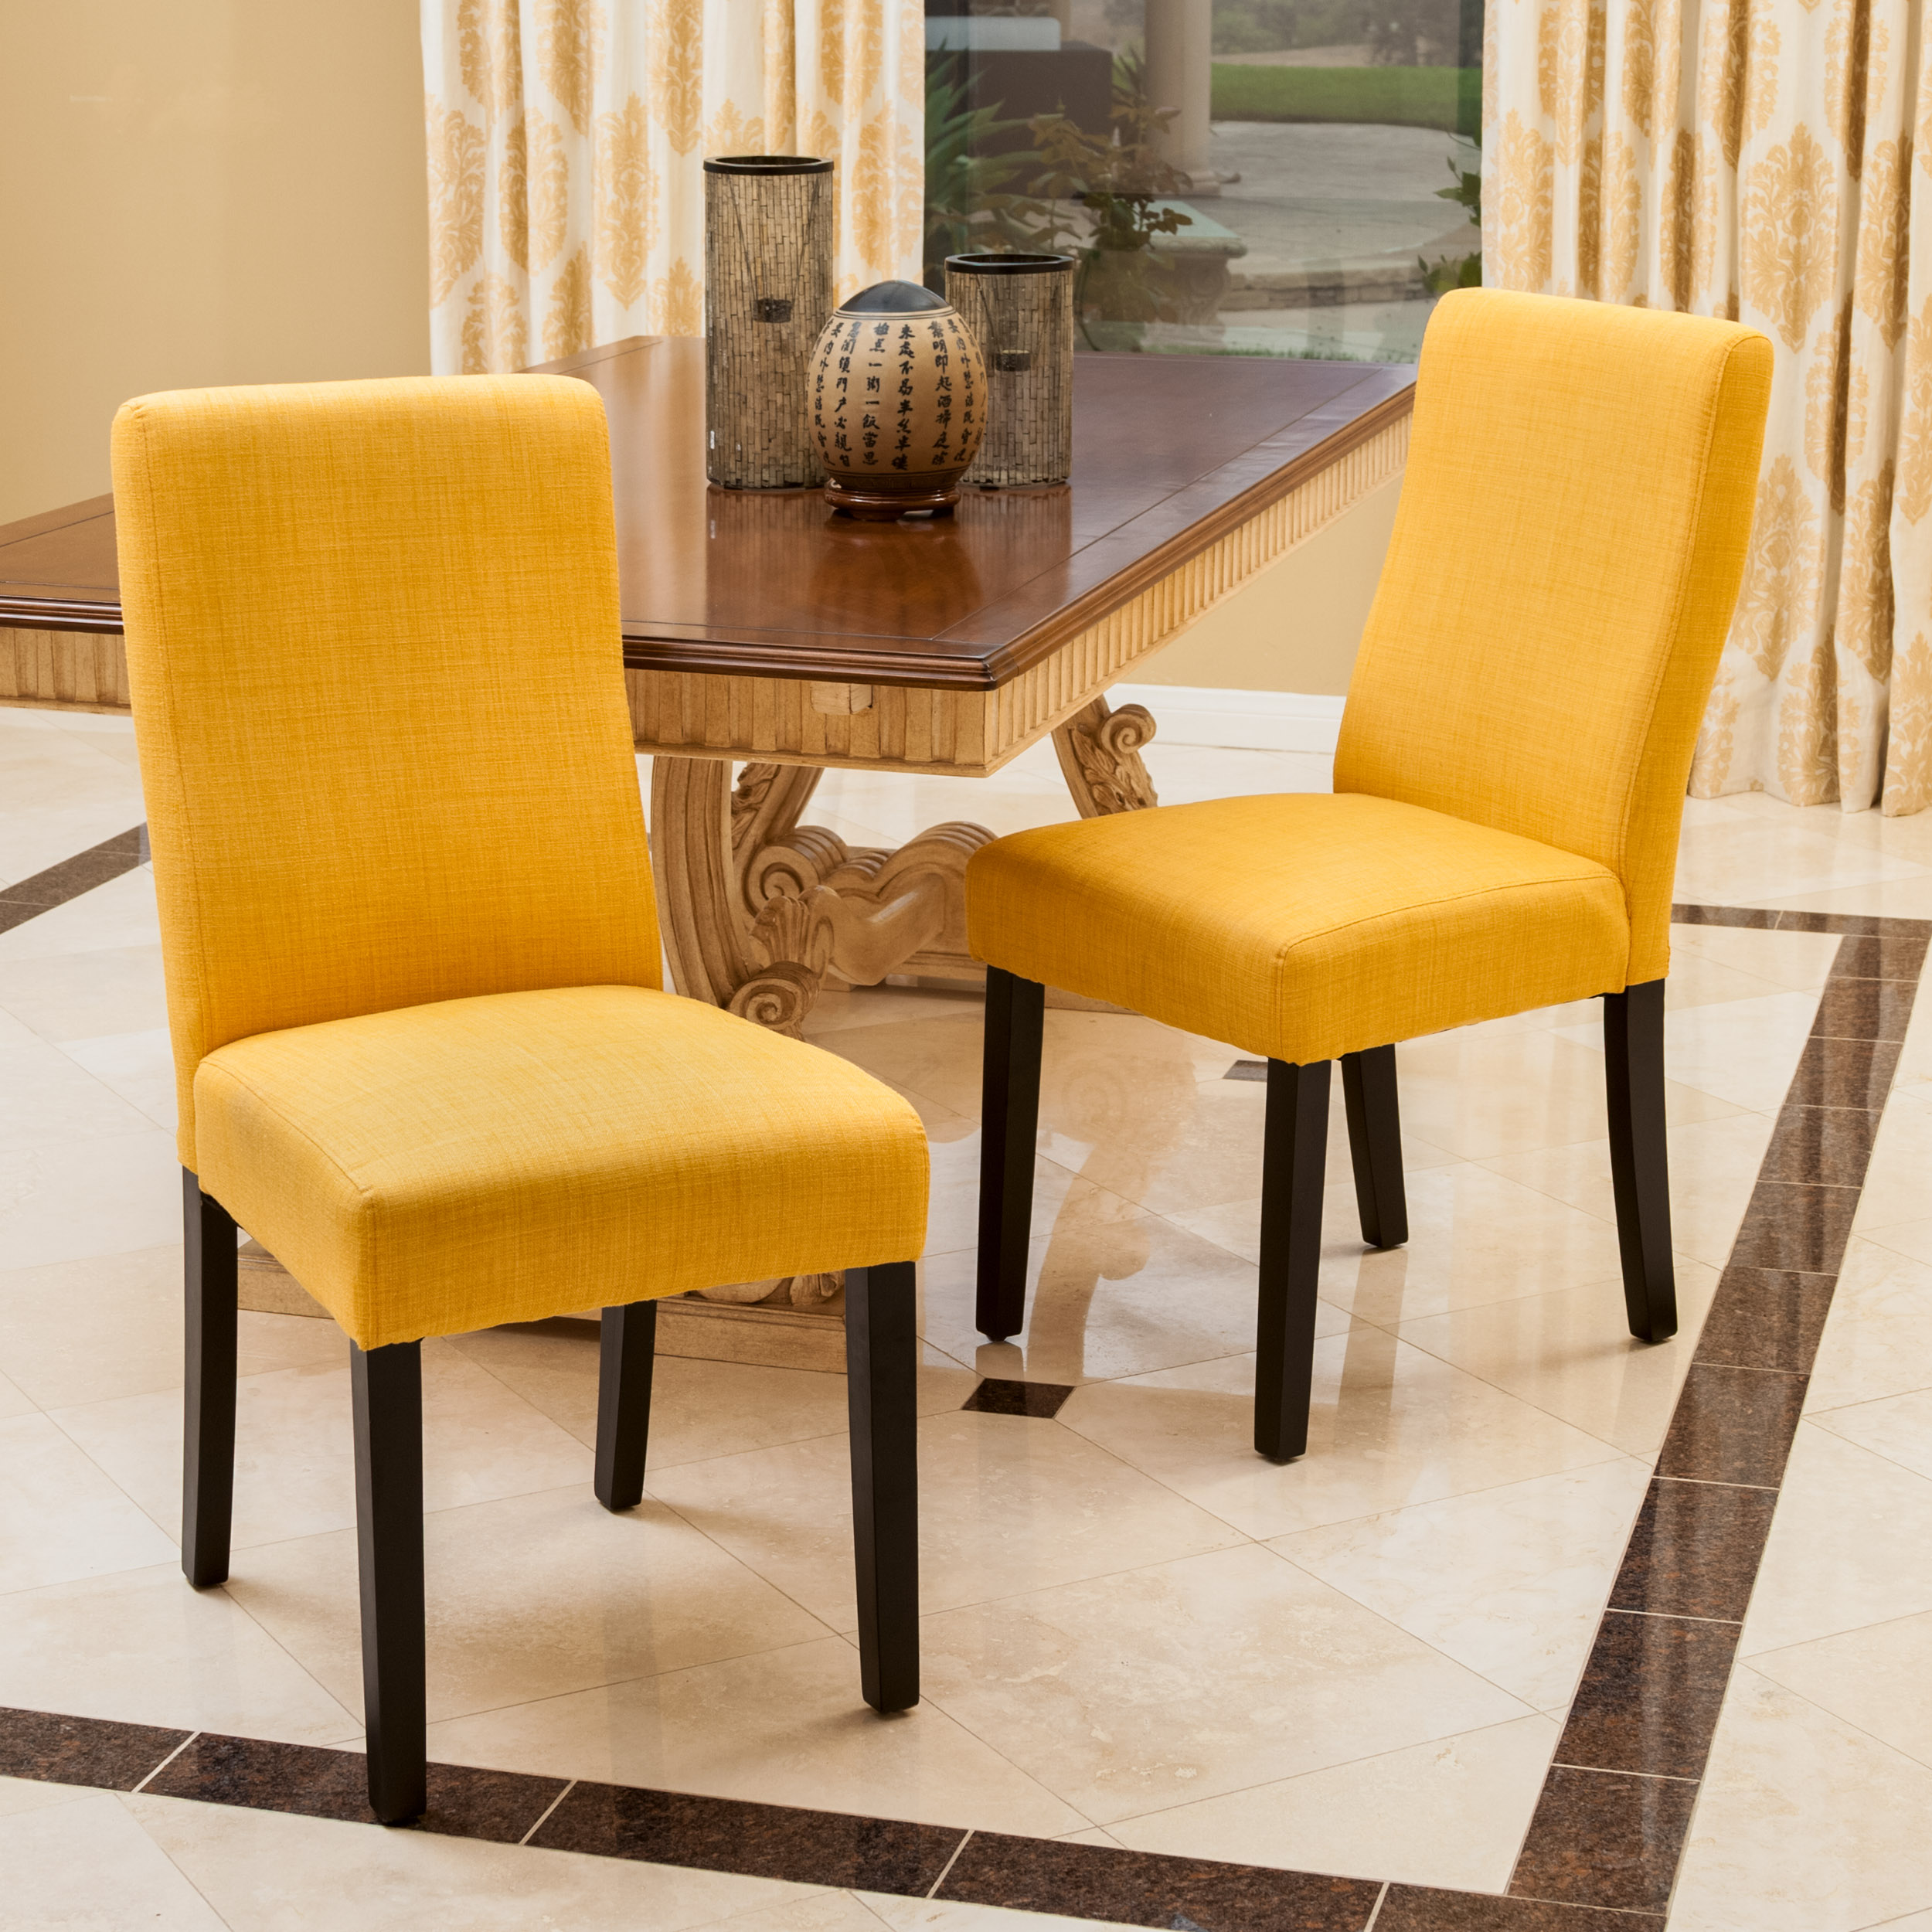 Layla Dining Chair (Set of 2)